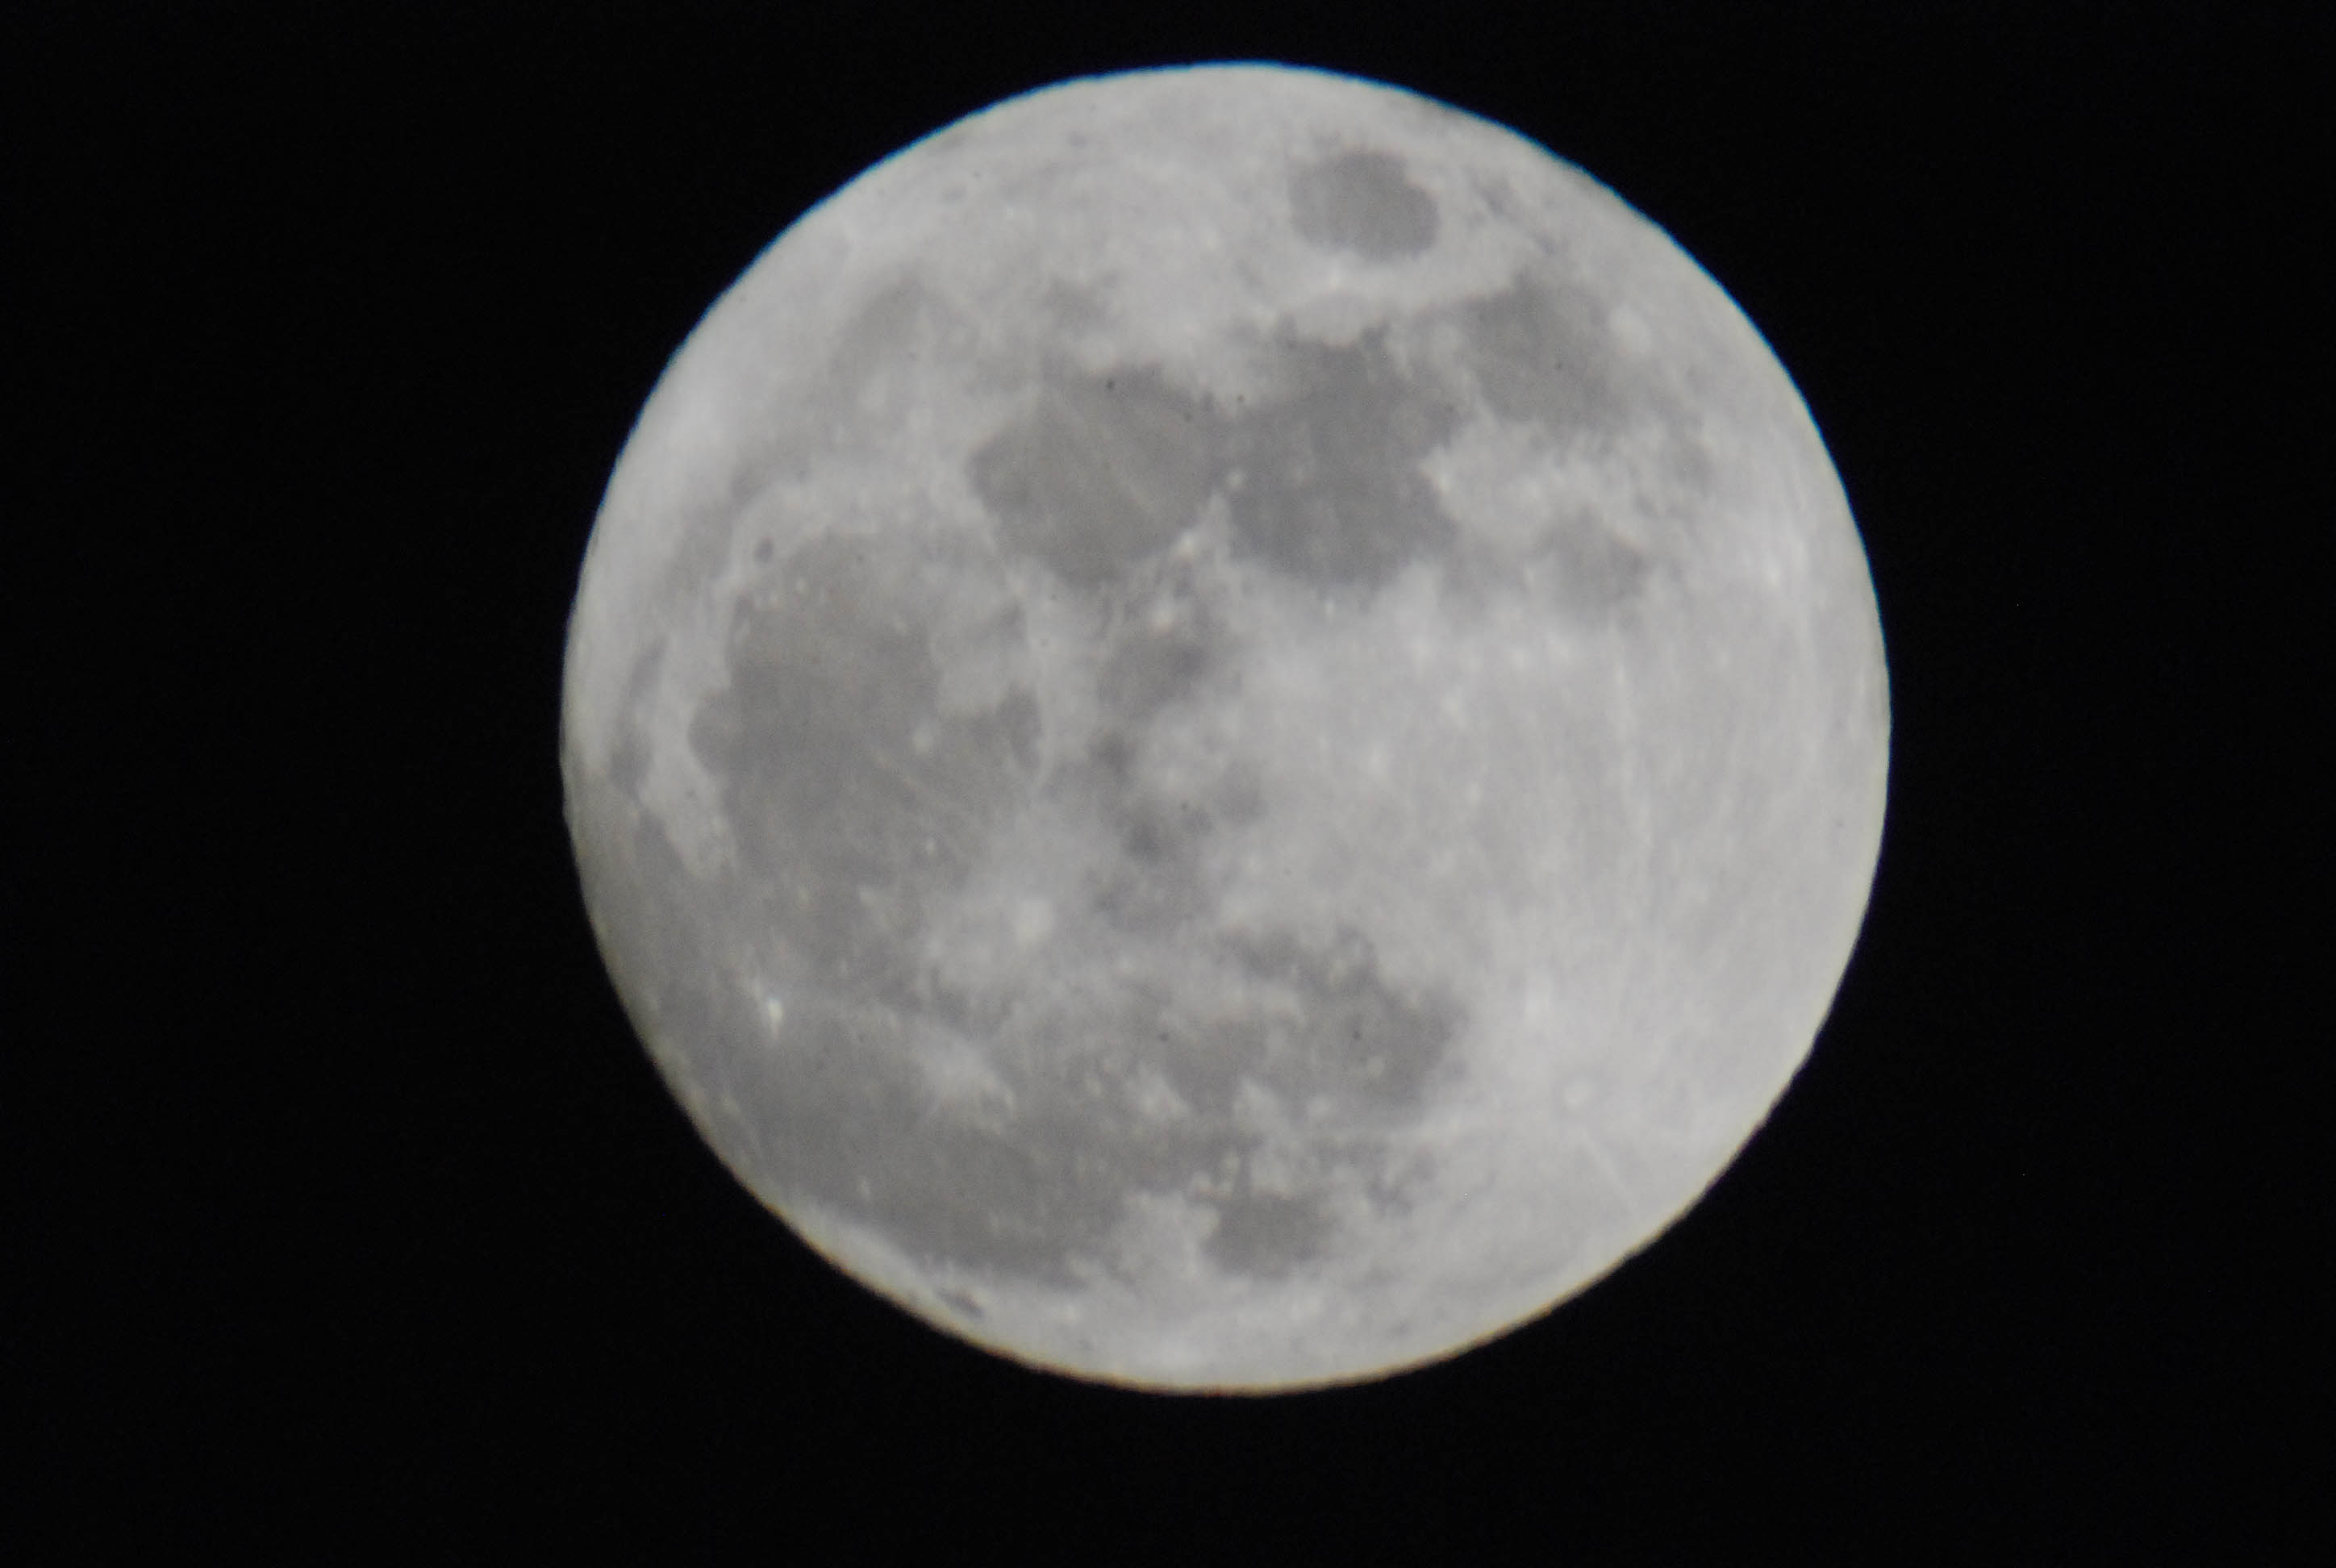 Its a full moon out tonight hd 092917